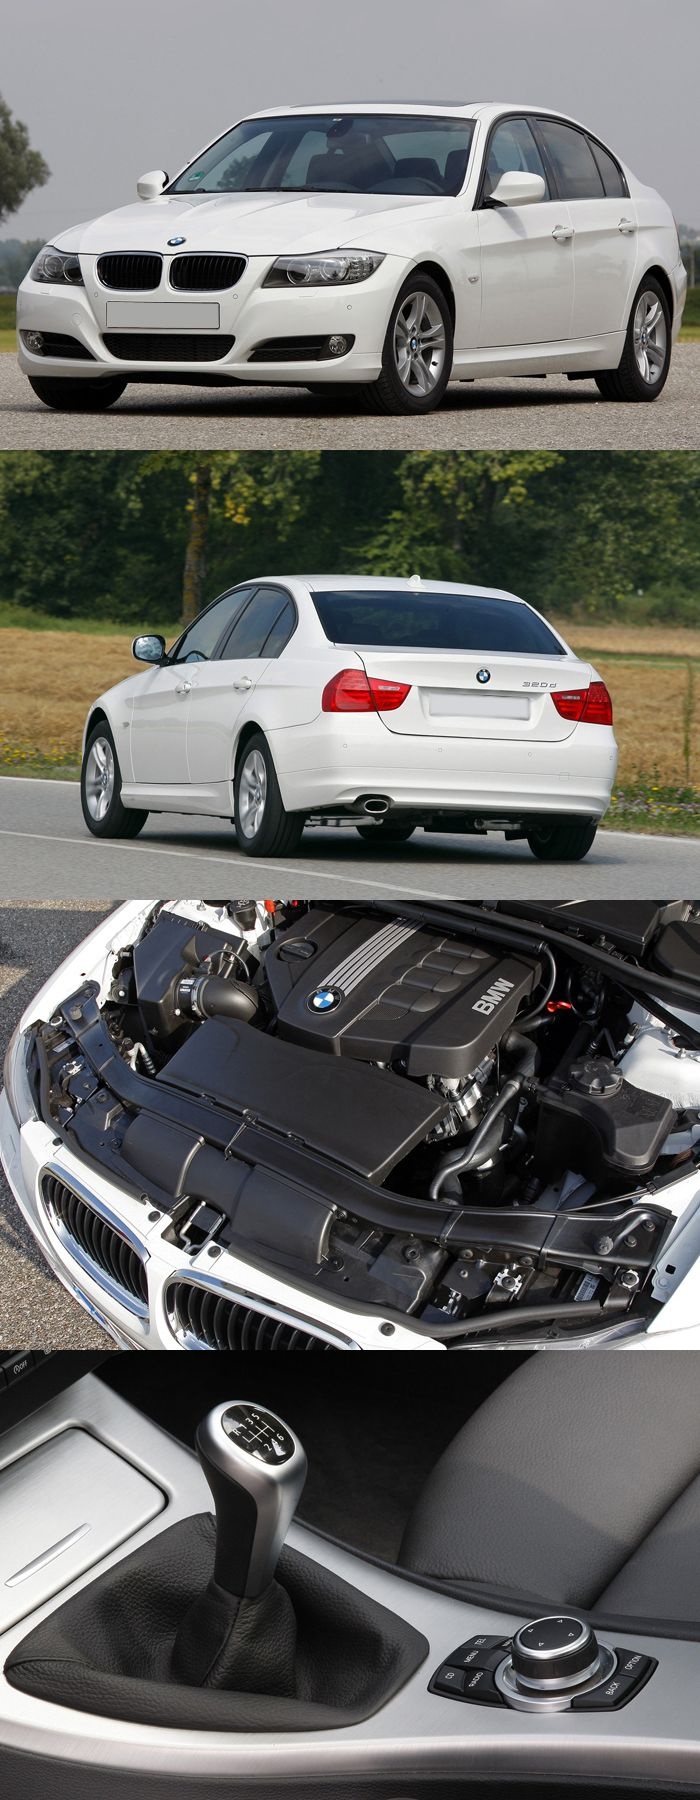 Bmw 320d gem of the series for more detail http germancarsenginesrepairservice